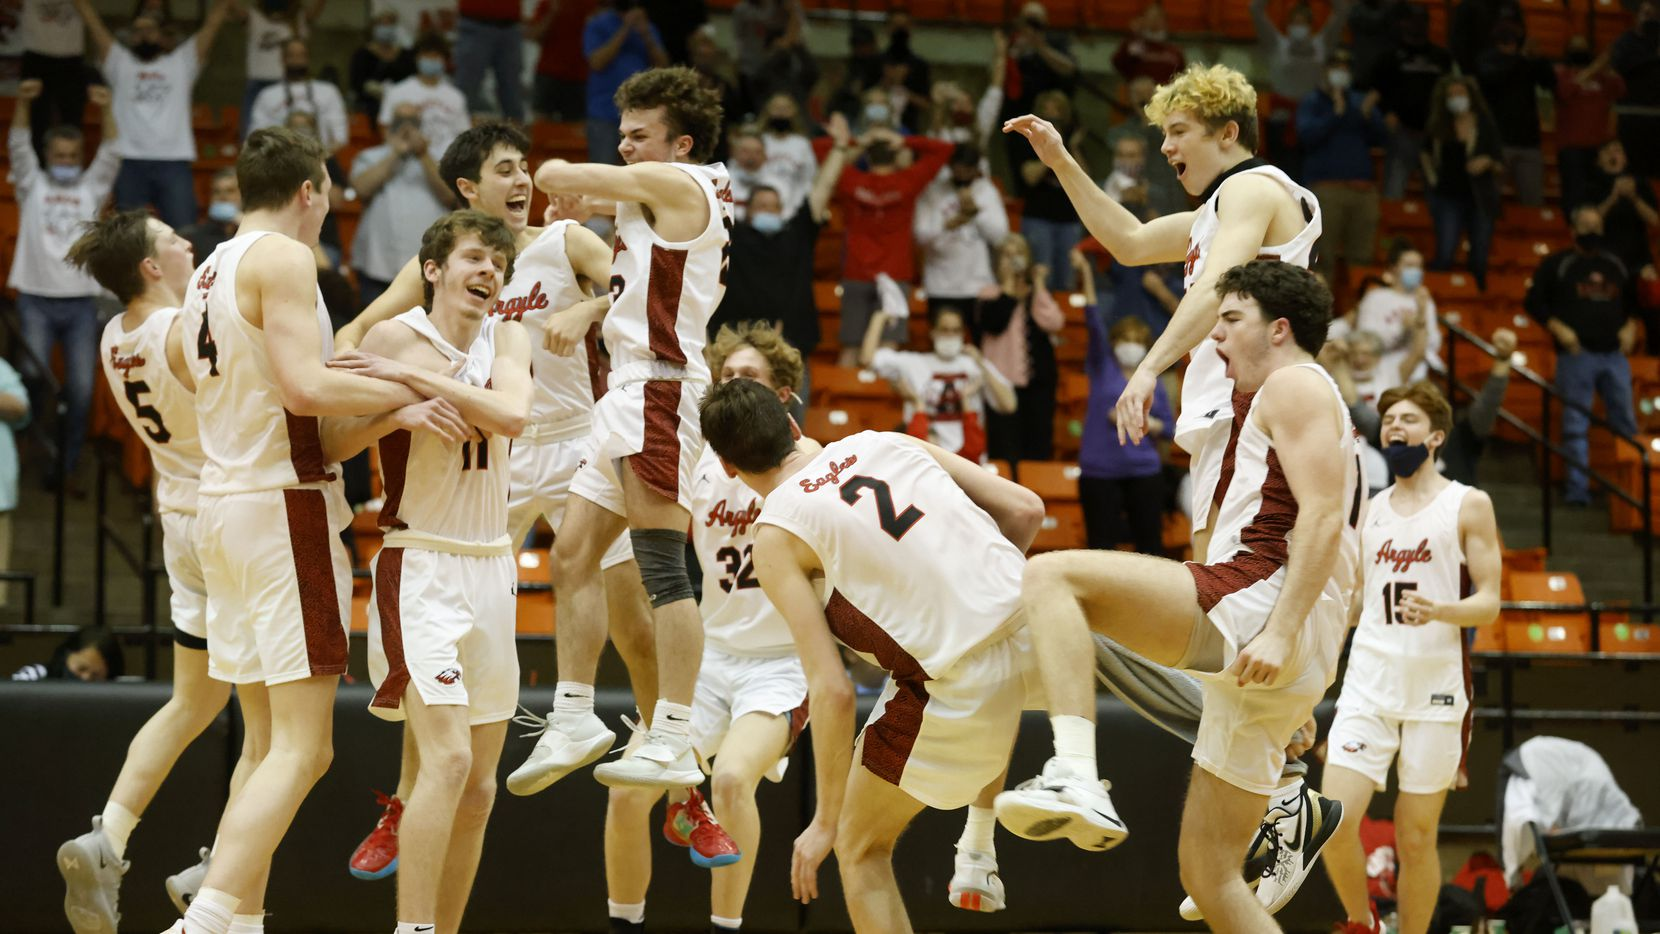 Argyle players celebrate their 43-39 victory over Oak Cliff Faith Family during a boys basketball Class 4A state semifinal in Fort Worth, Texas on March 9, 2021.